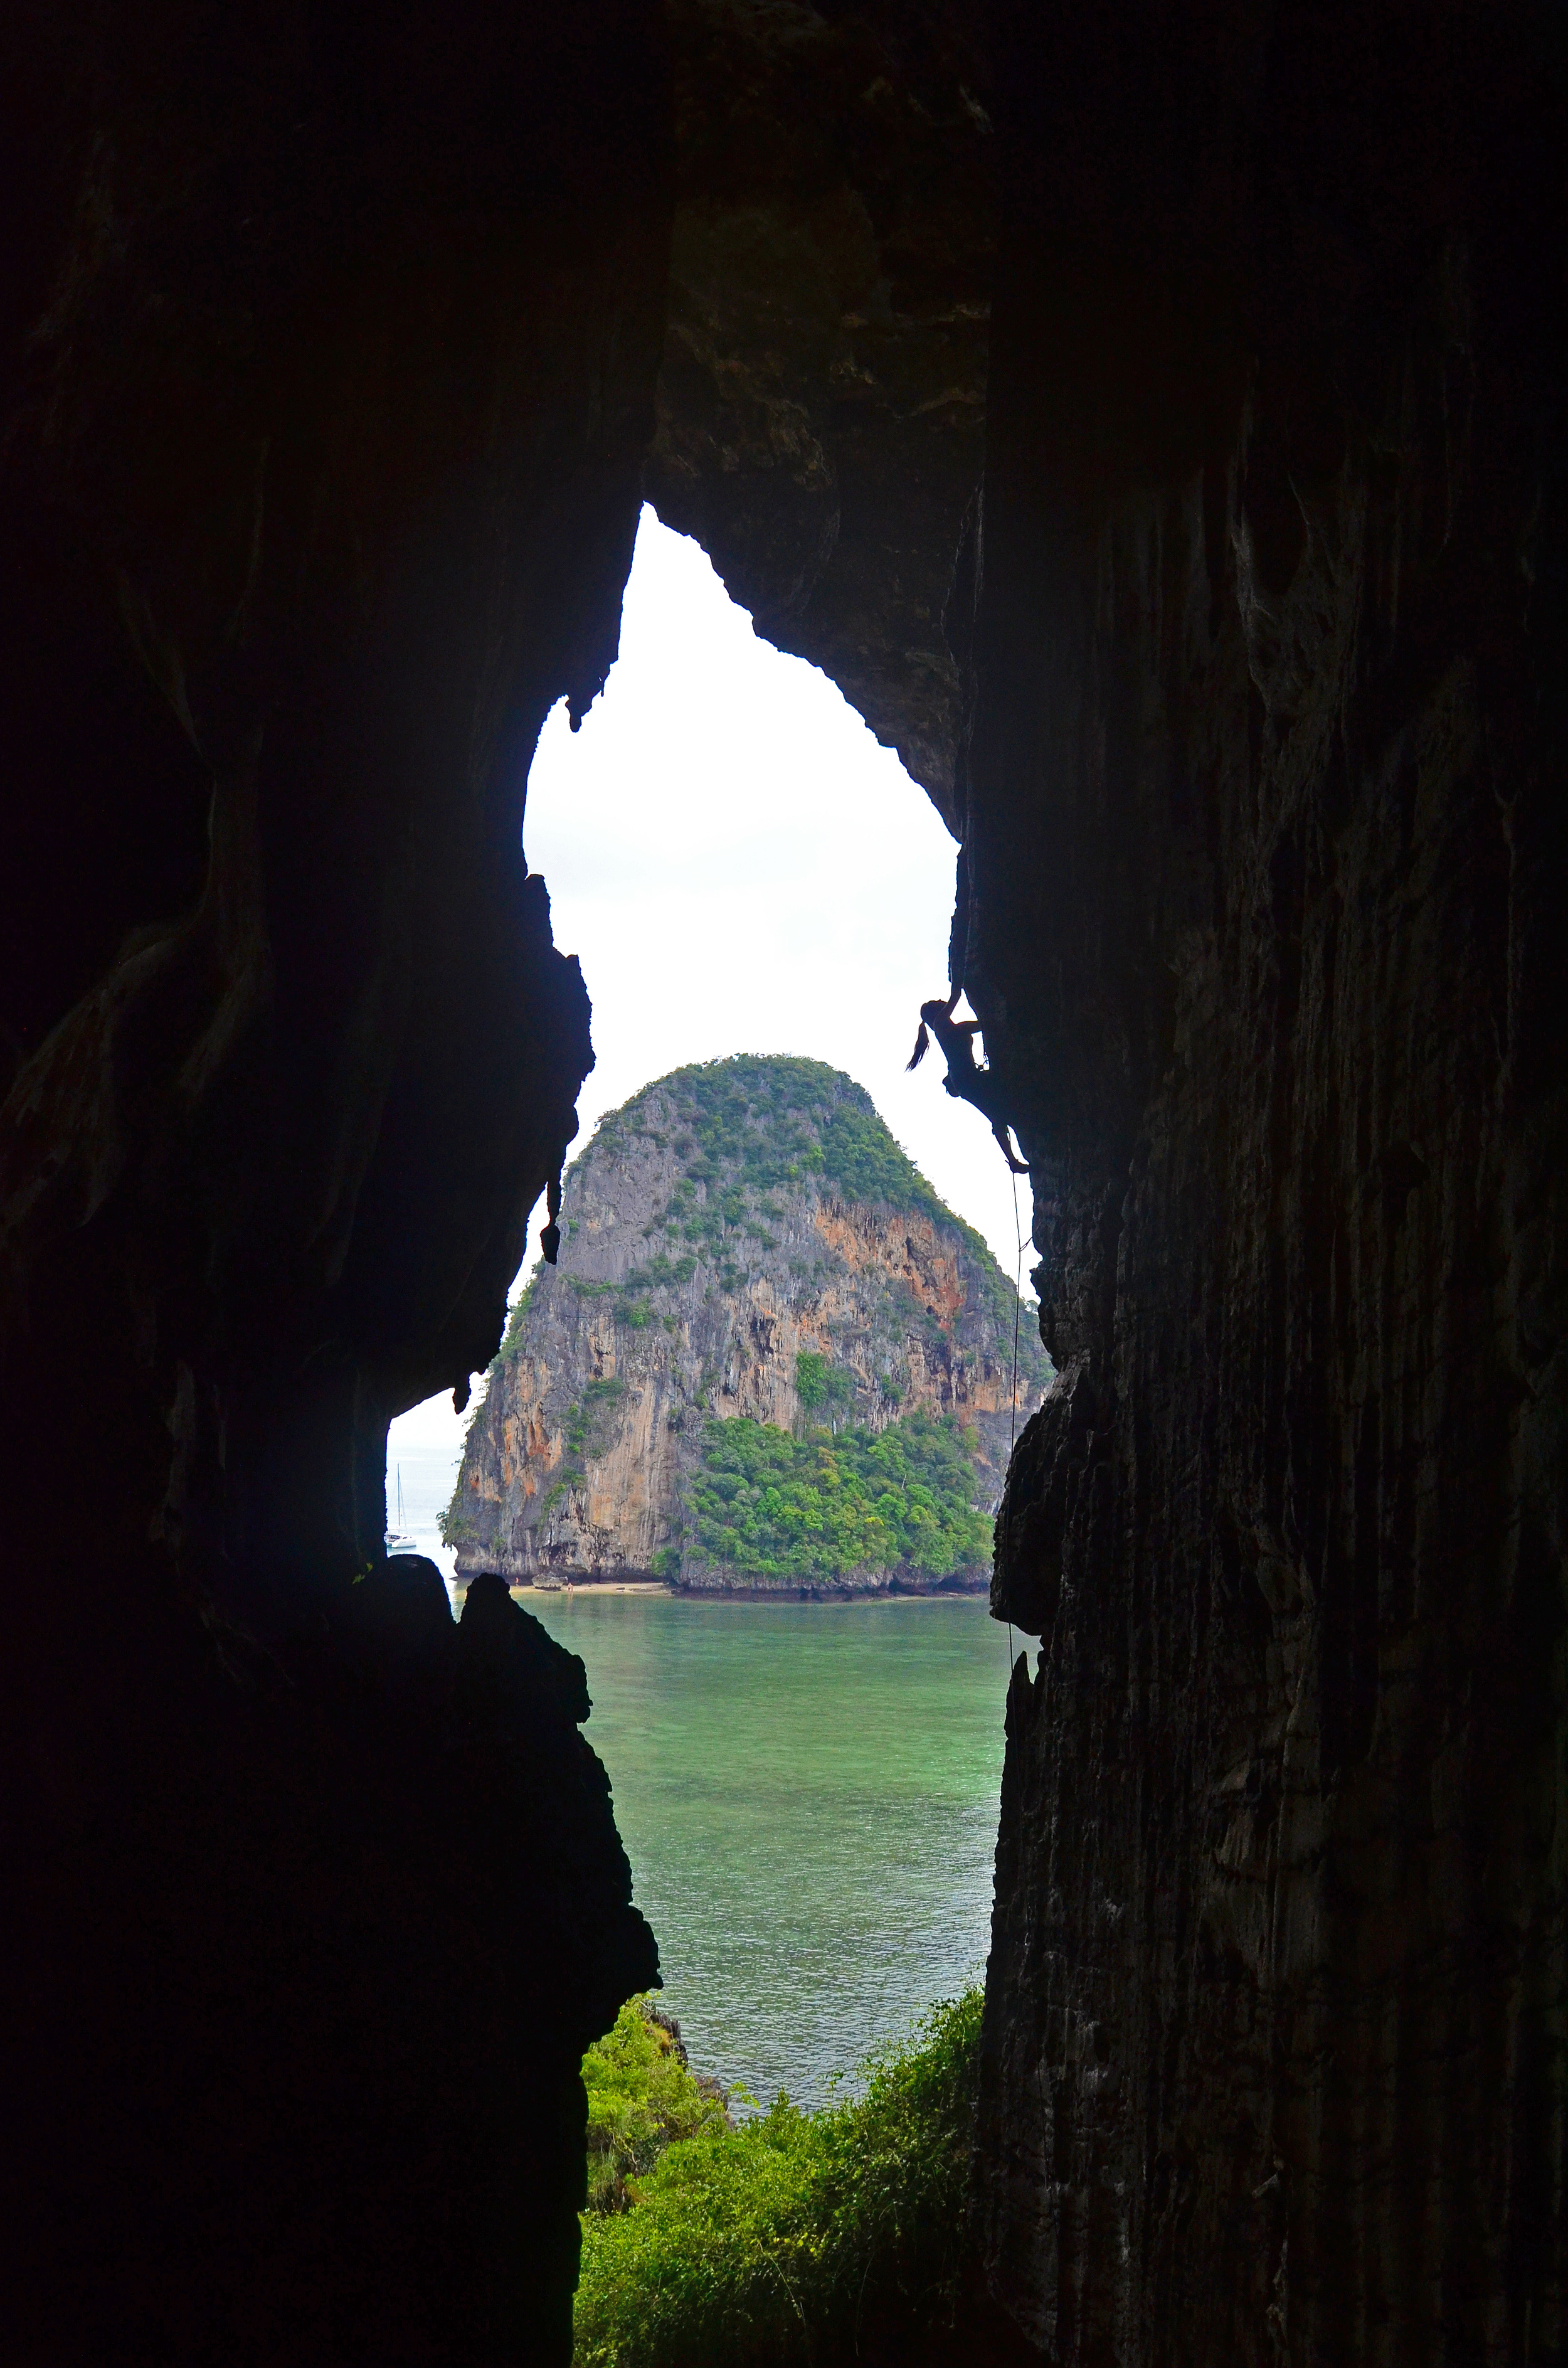 Climbing the Cavern's Mouth